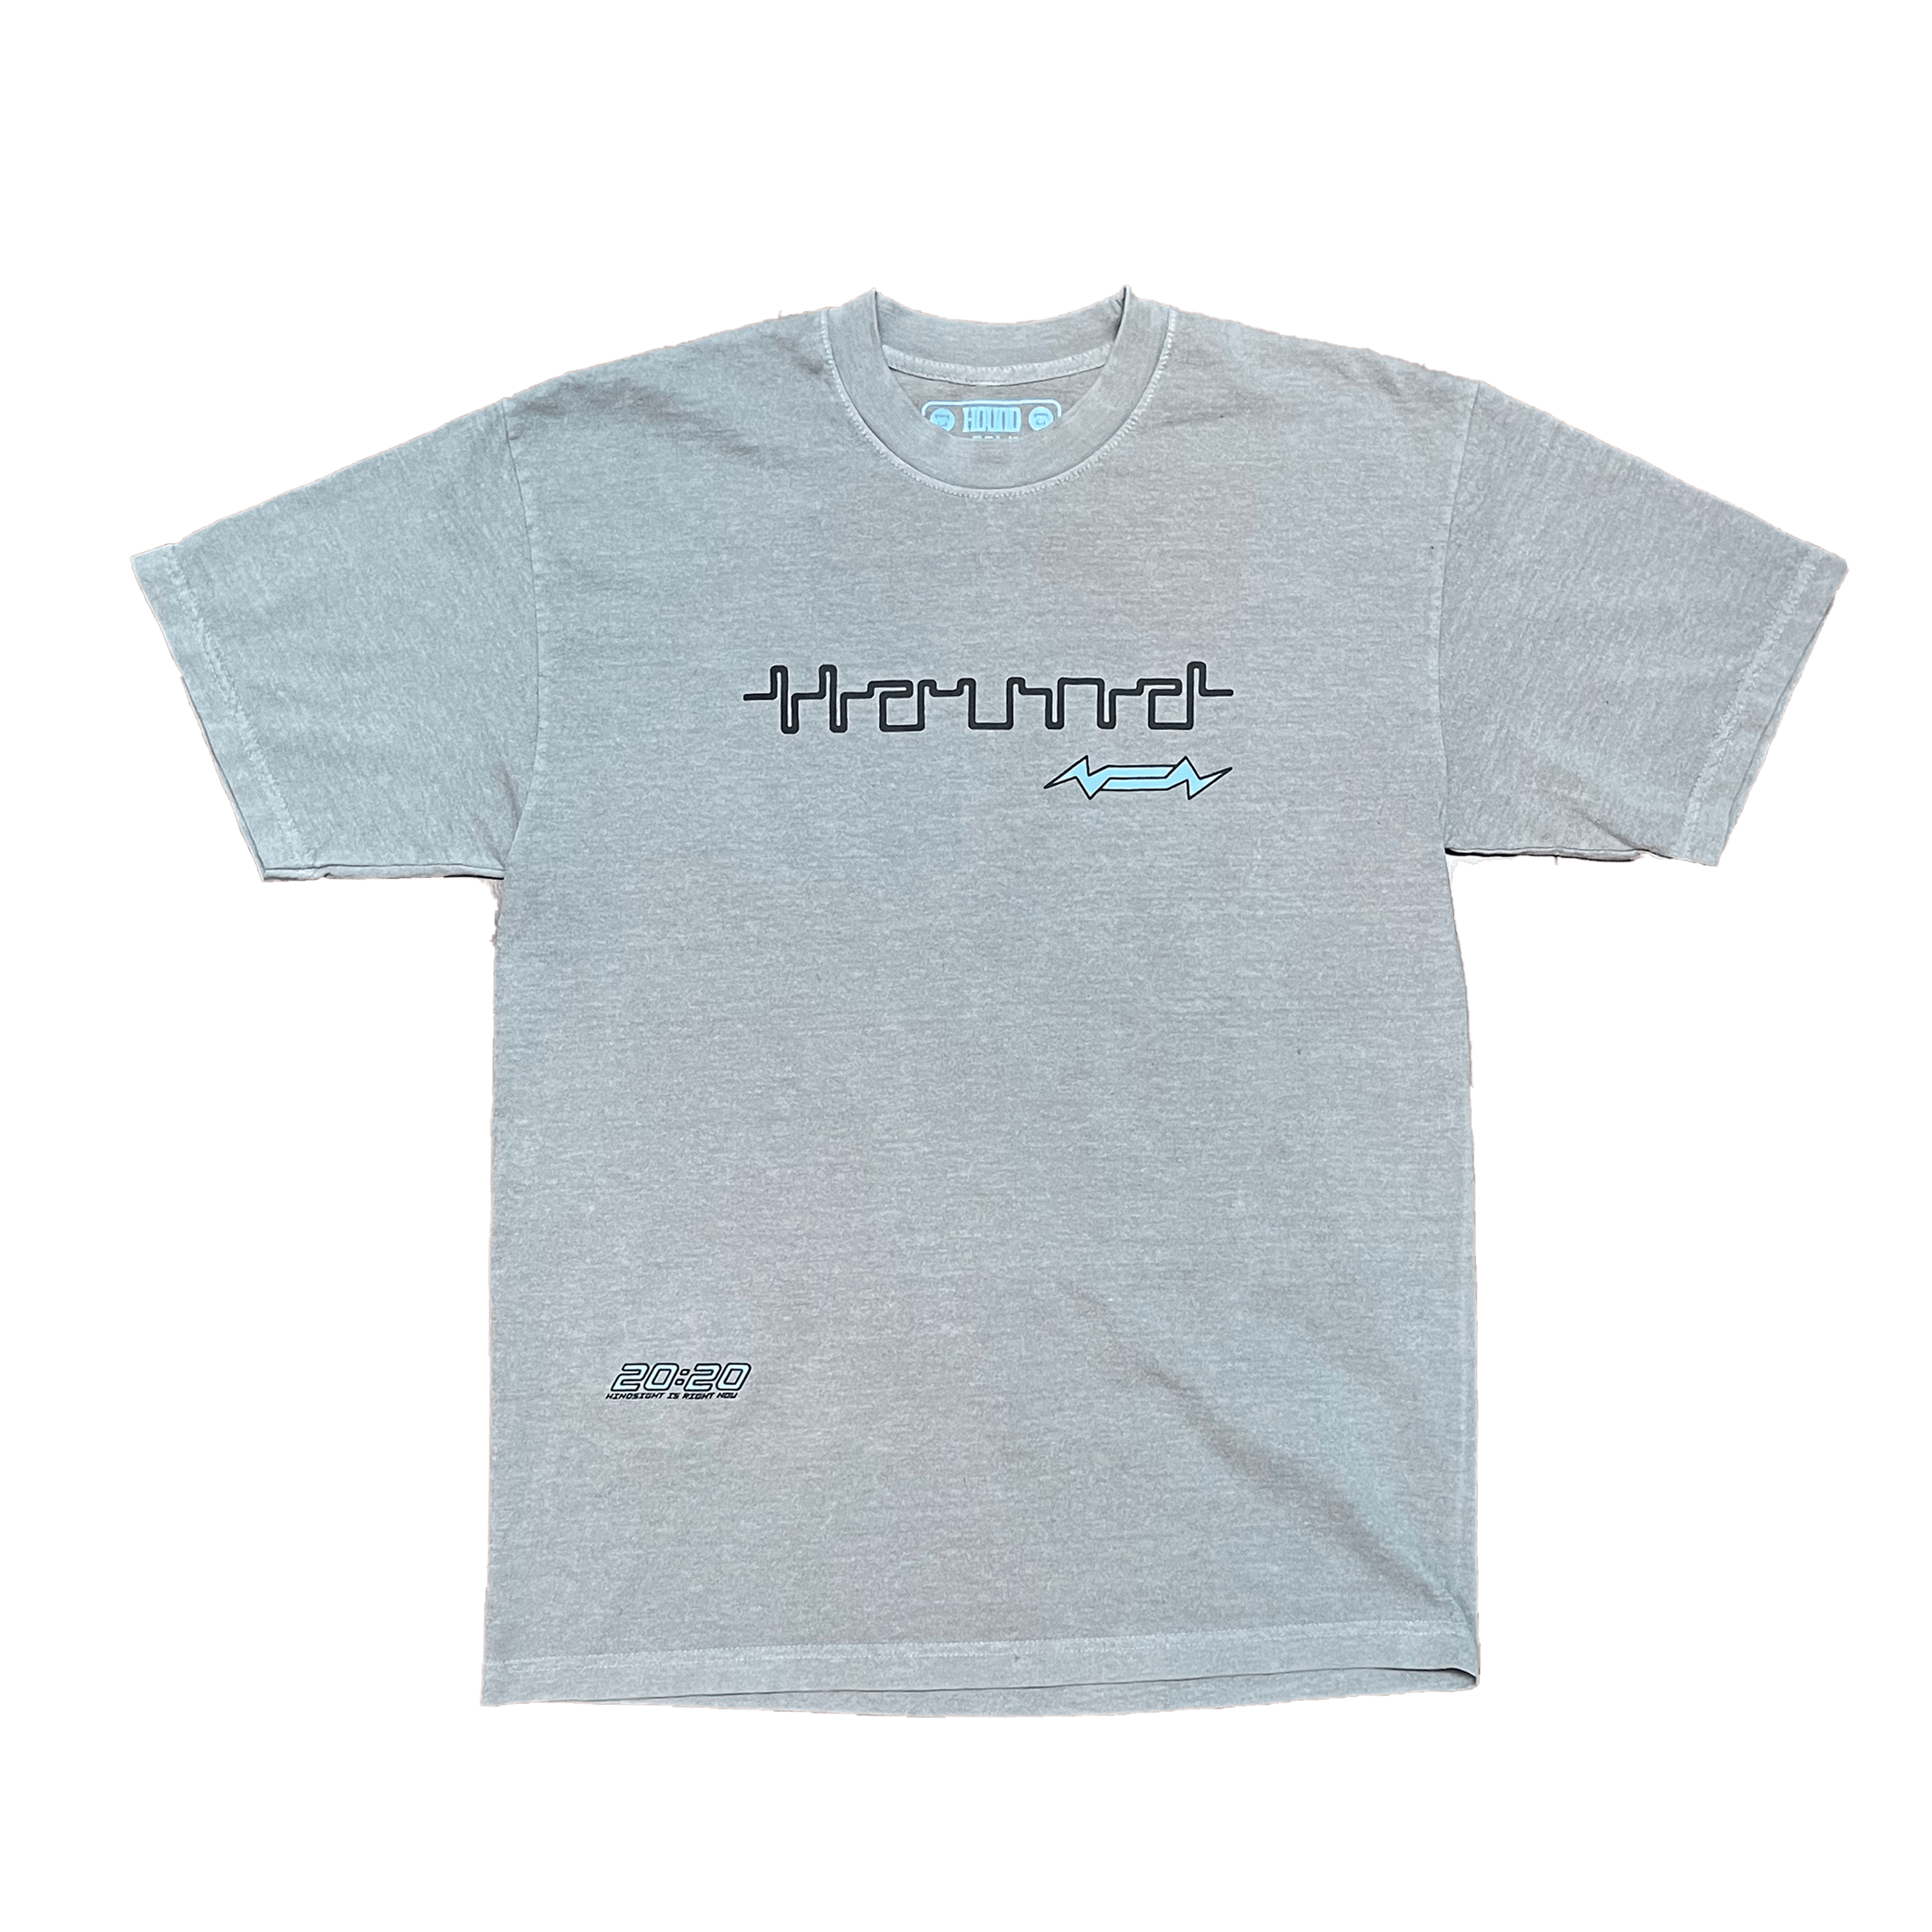 OUR 6.5 OZ. OVERSIZED HEAVY TEE IS WASHED IN NATURAL ENZYMES ALLOWING THE GARMENT TO HAVE A VINTAGE FEEL TO TOUCH. 100% USA COTTON. SEWN AND PRINTED IN LOS ANGELES, CA.